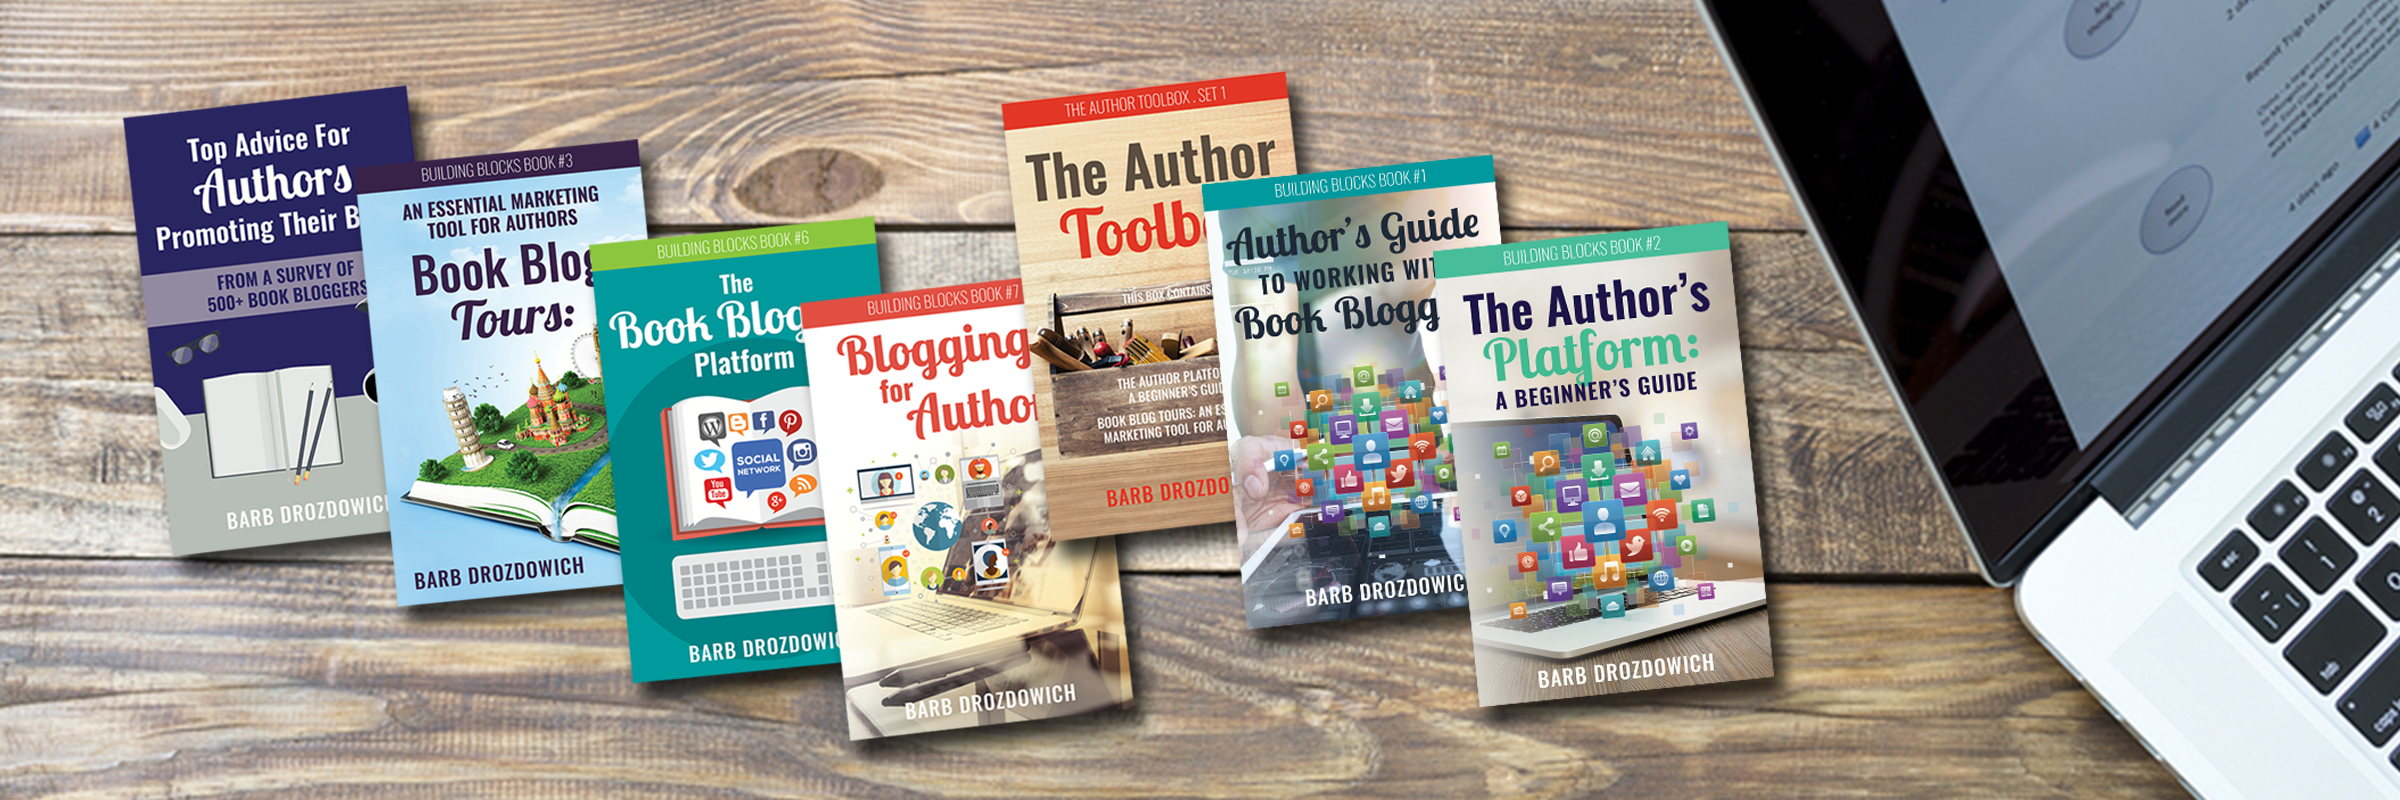 Barb Drozdowich tech helpful hints book covers